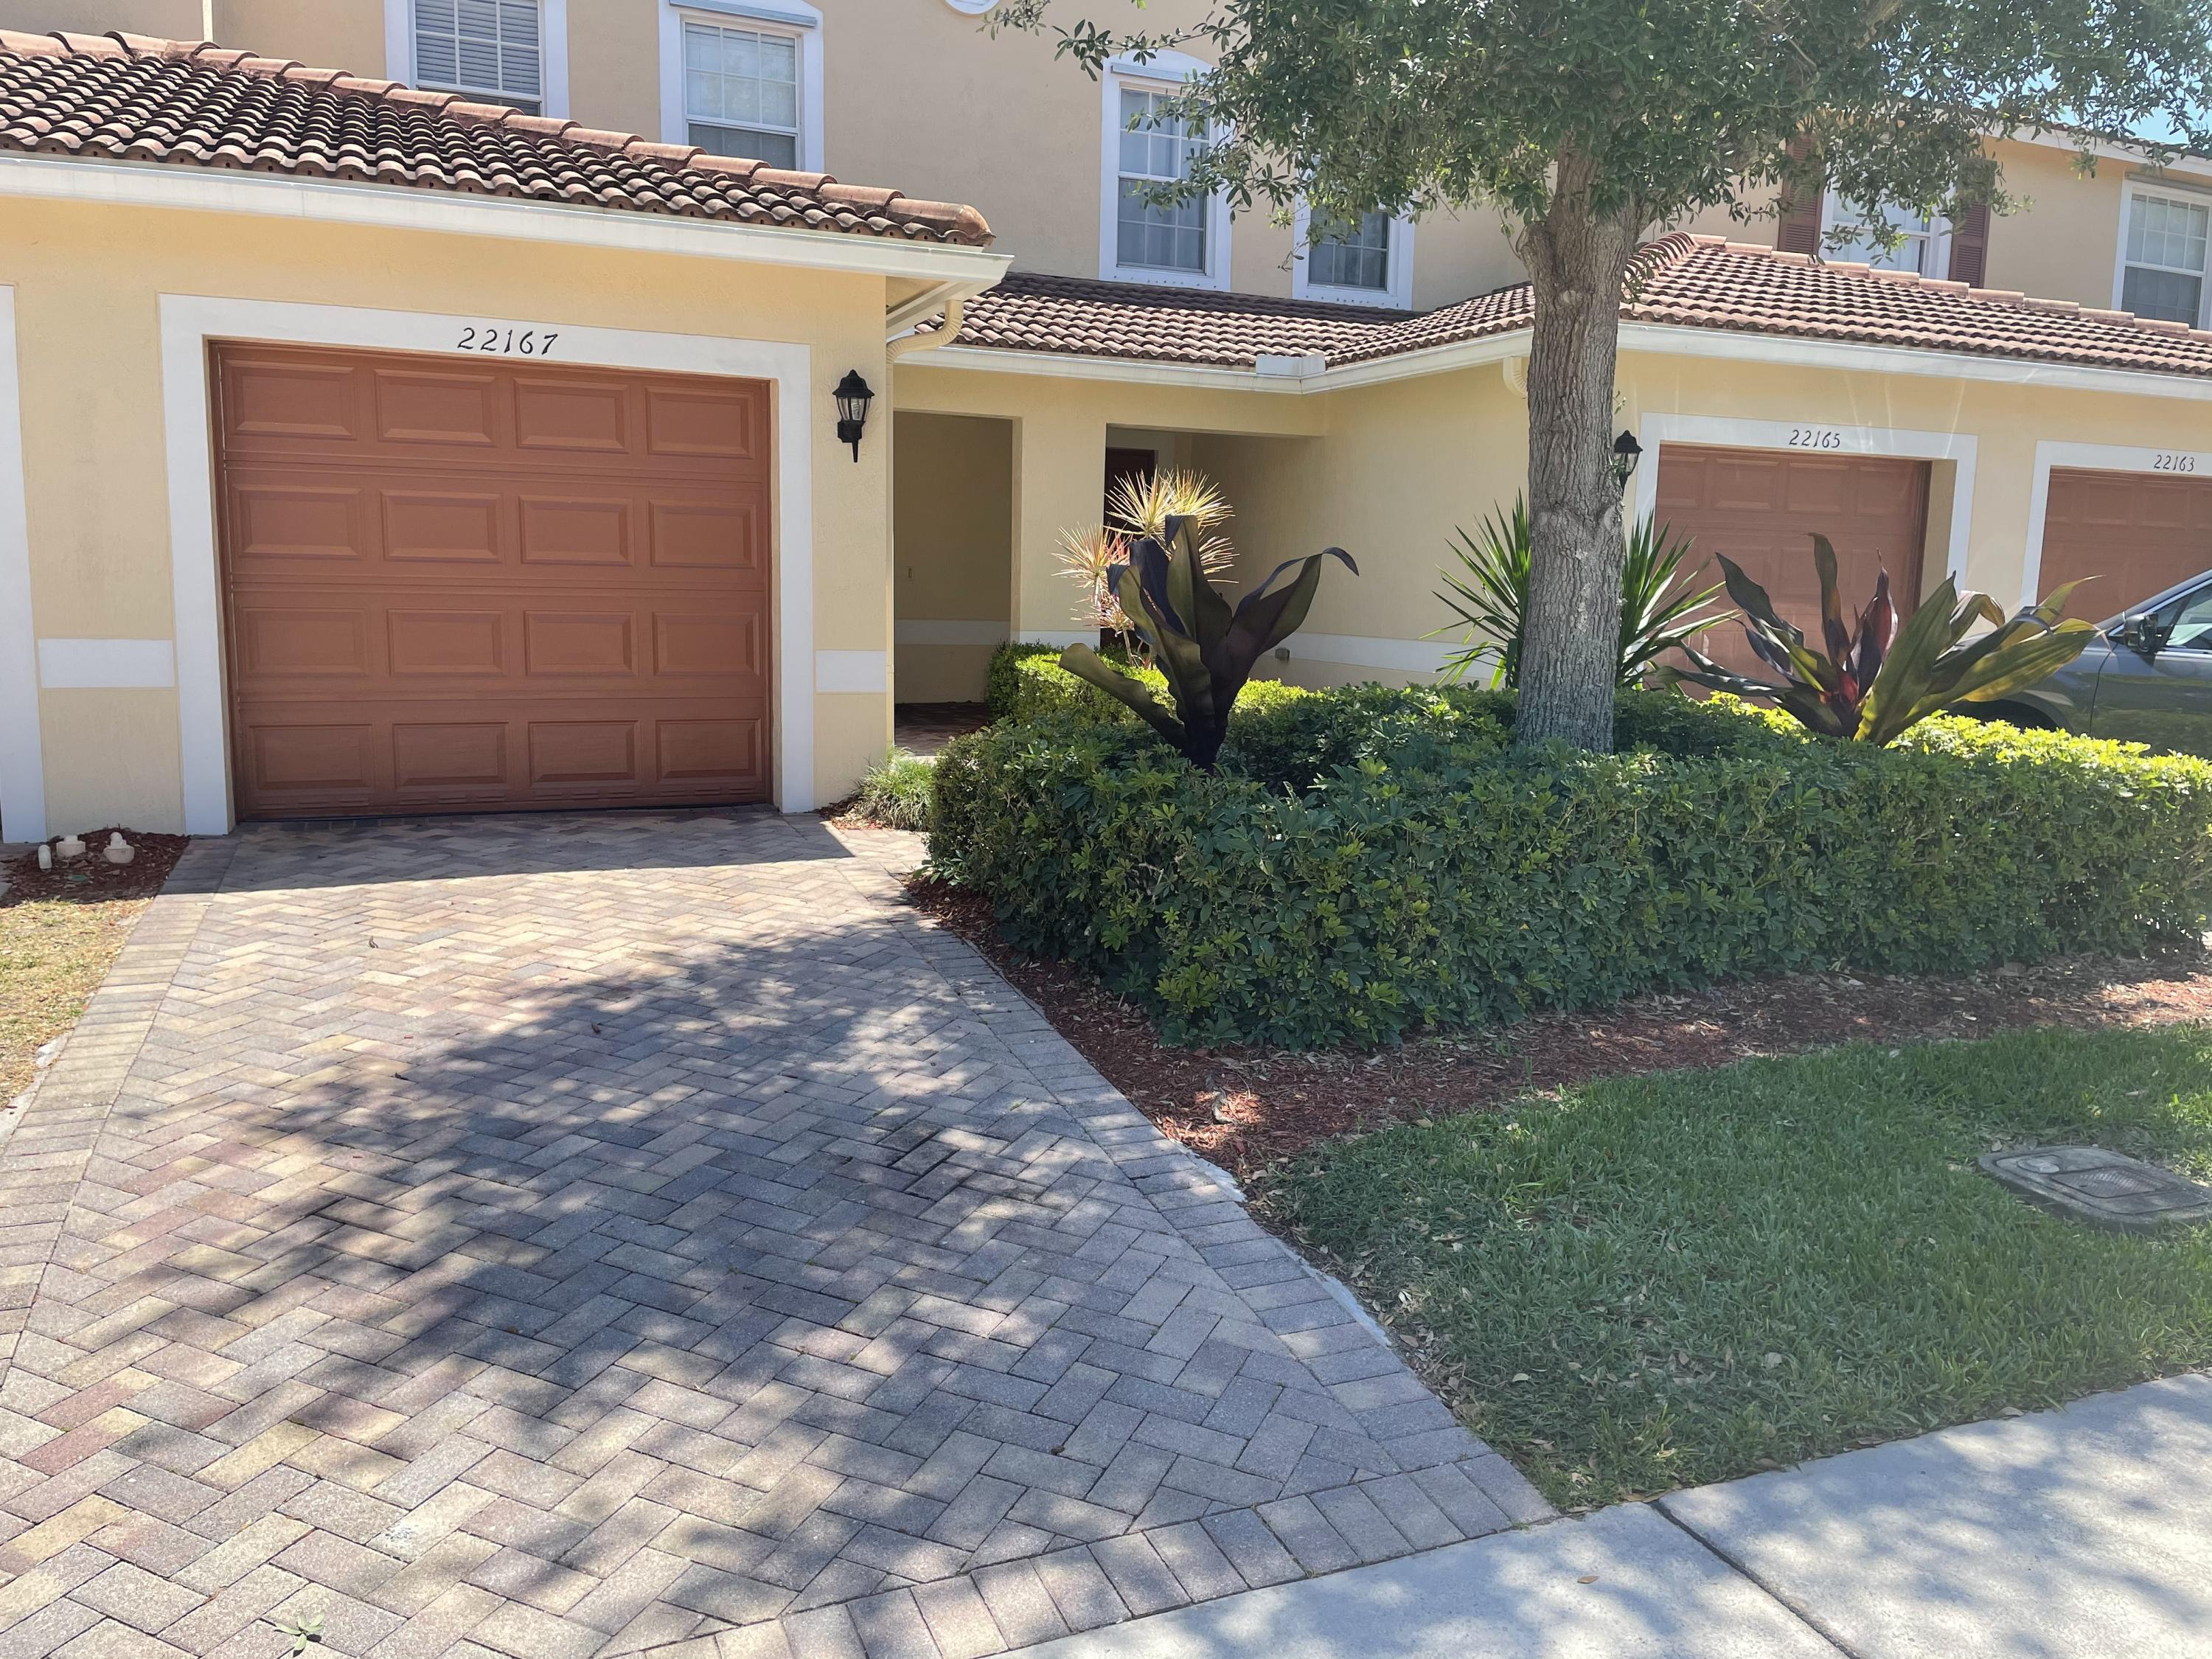 Home for sale in Royal Woods Boca Raton Florida